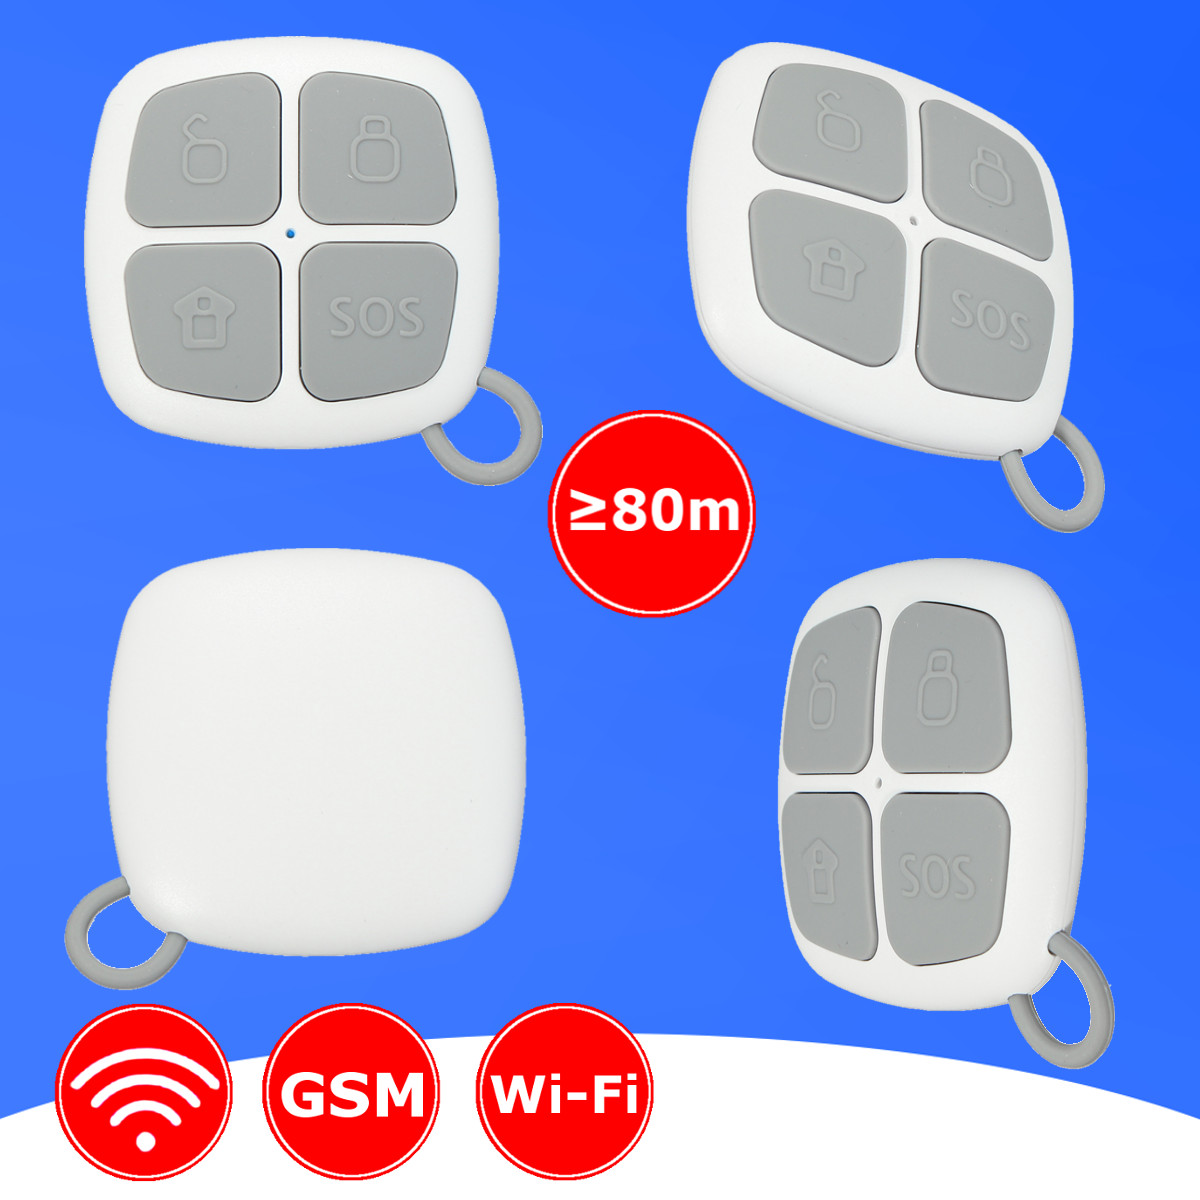 NEW Safurance Wireless Remote Control Alarm Sensors Accessories For G90B PLUS WiFi GSM Home Alarm System Home Security fuers 2018 update g90b plus 2g 2 4g wifi gsm sms wireless home security alarm system ios android app remote control